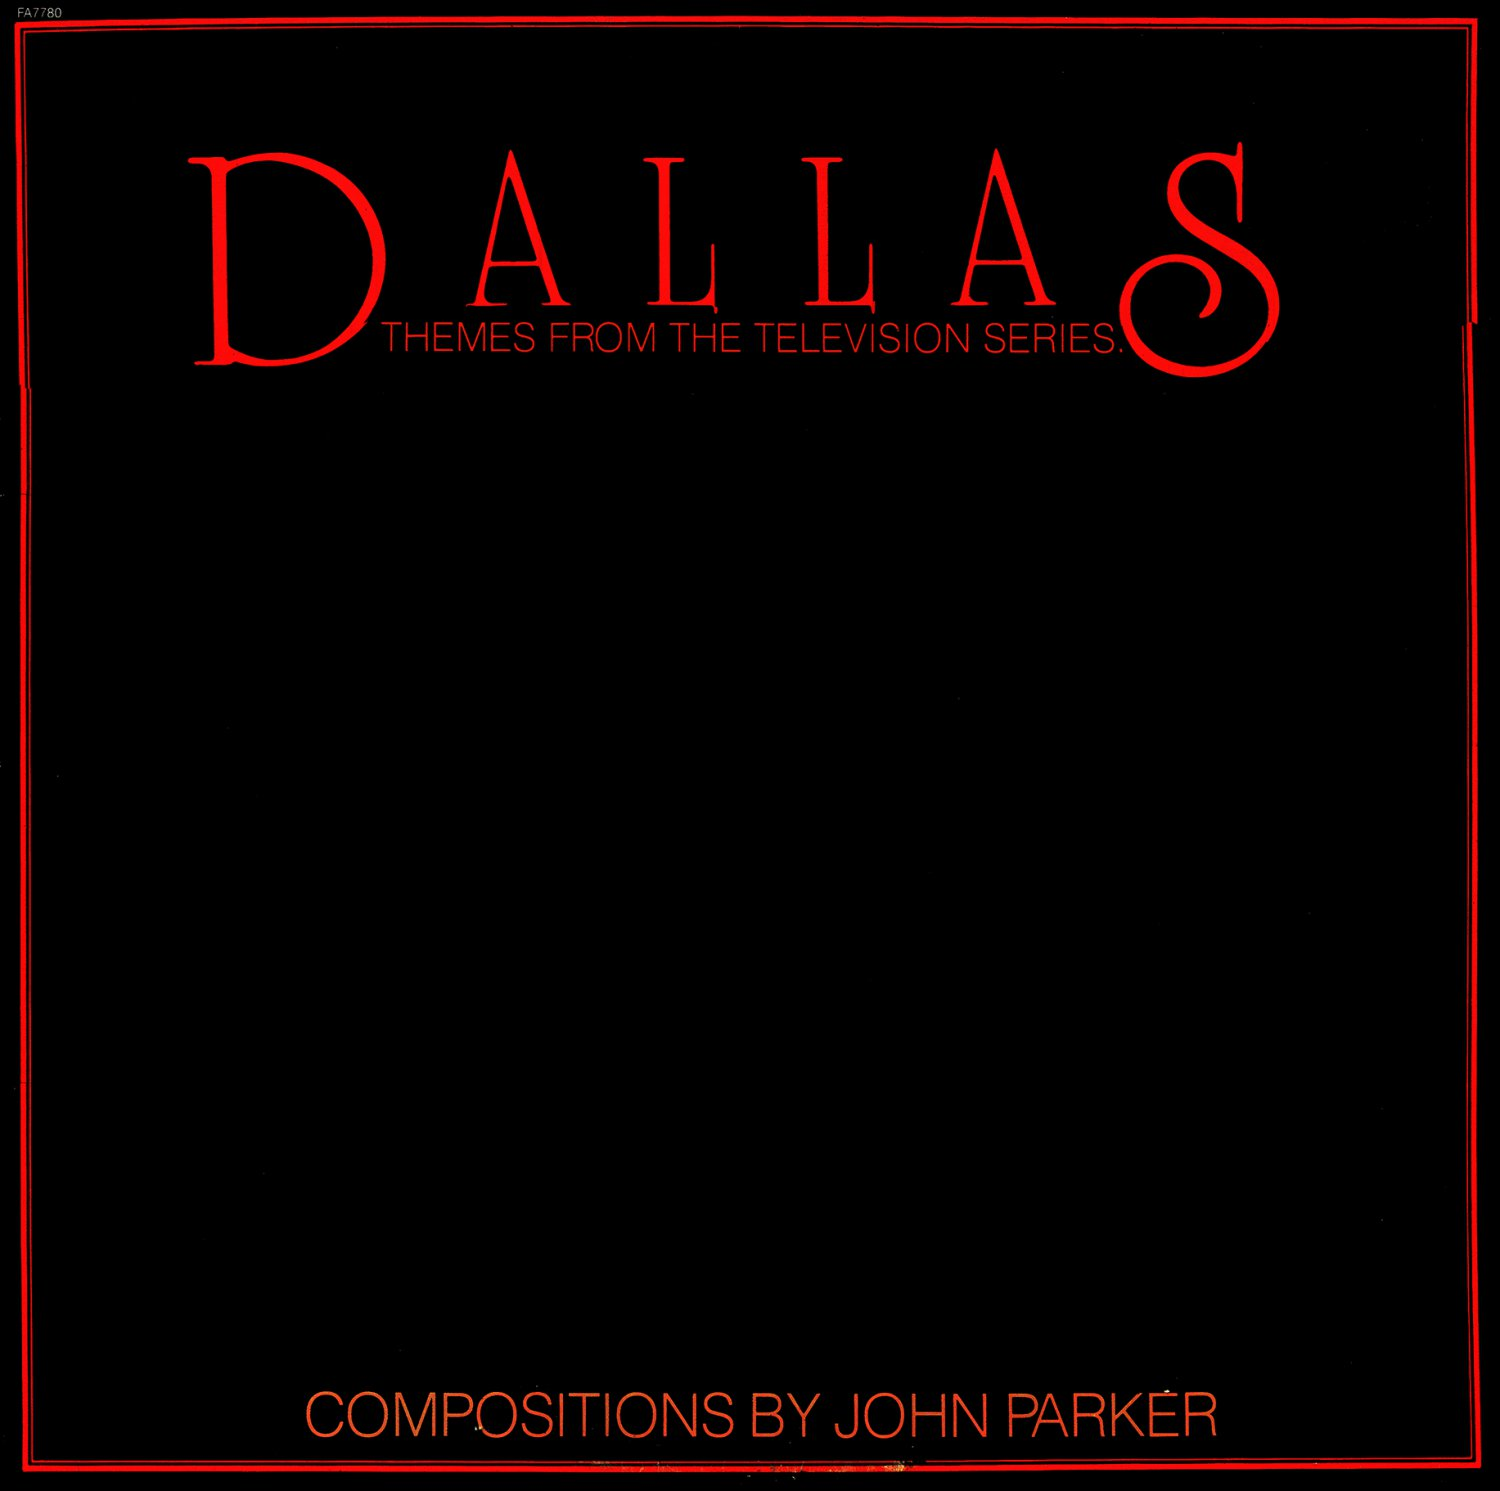 Dallas, Themes From The Television Series - Original Soundtrack, John Parker OST LP/CD